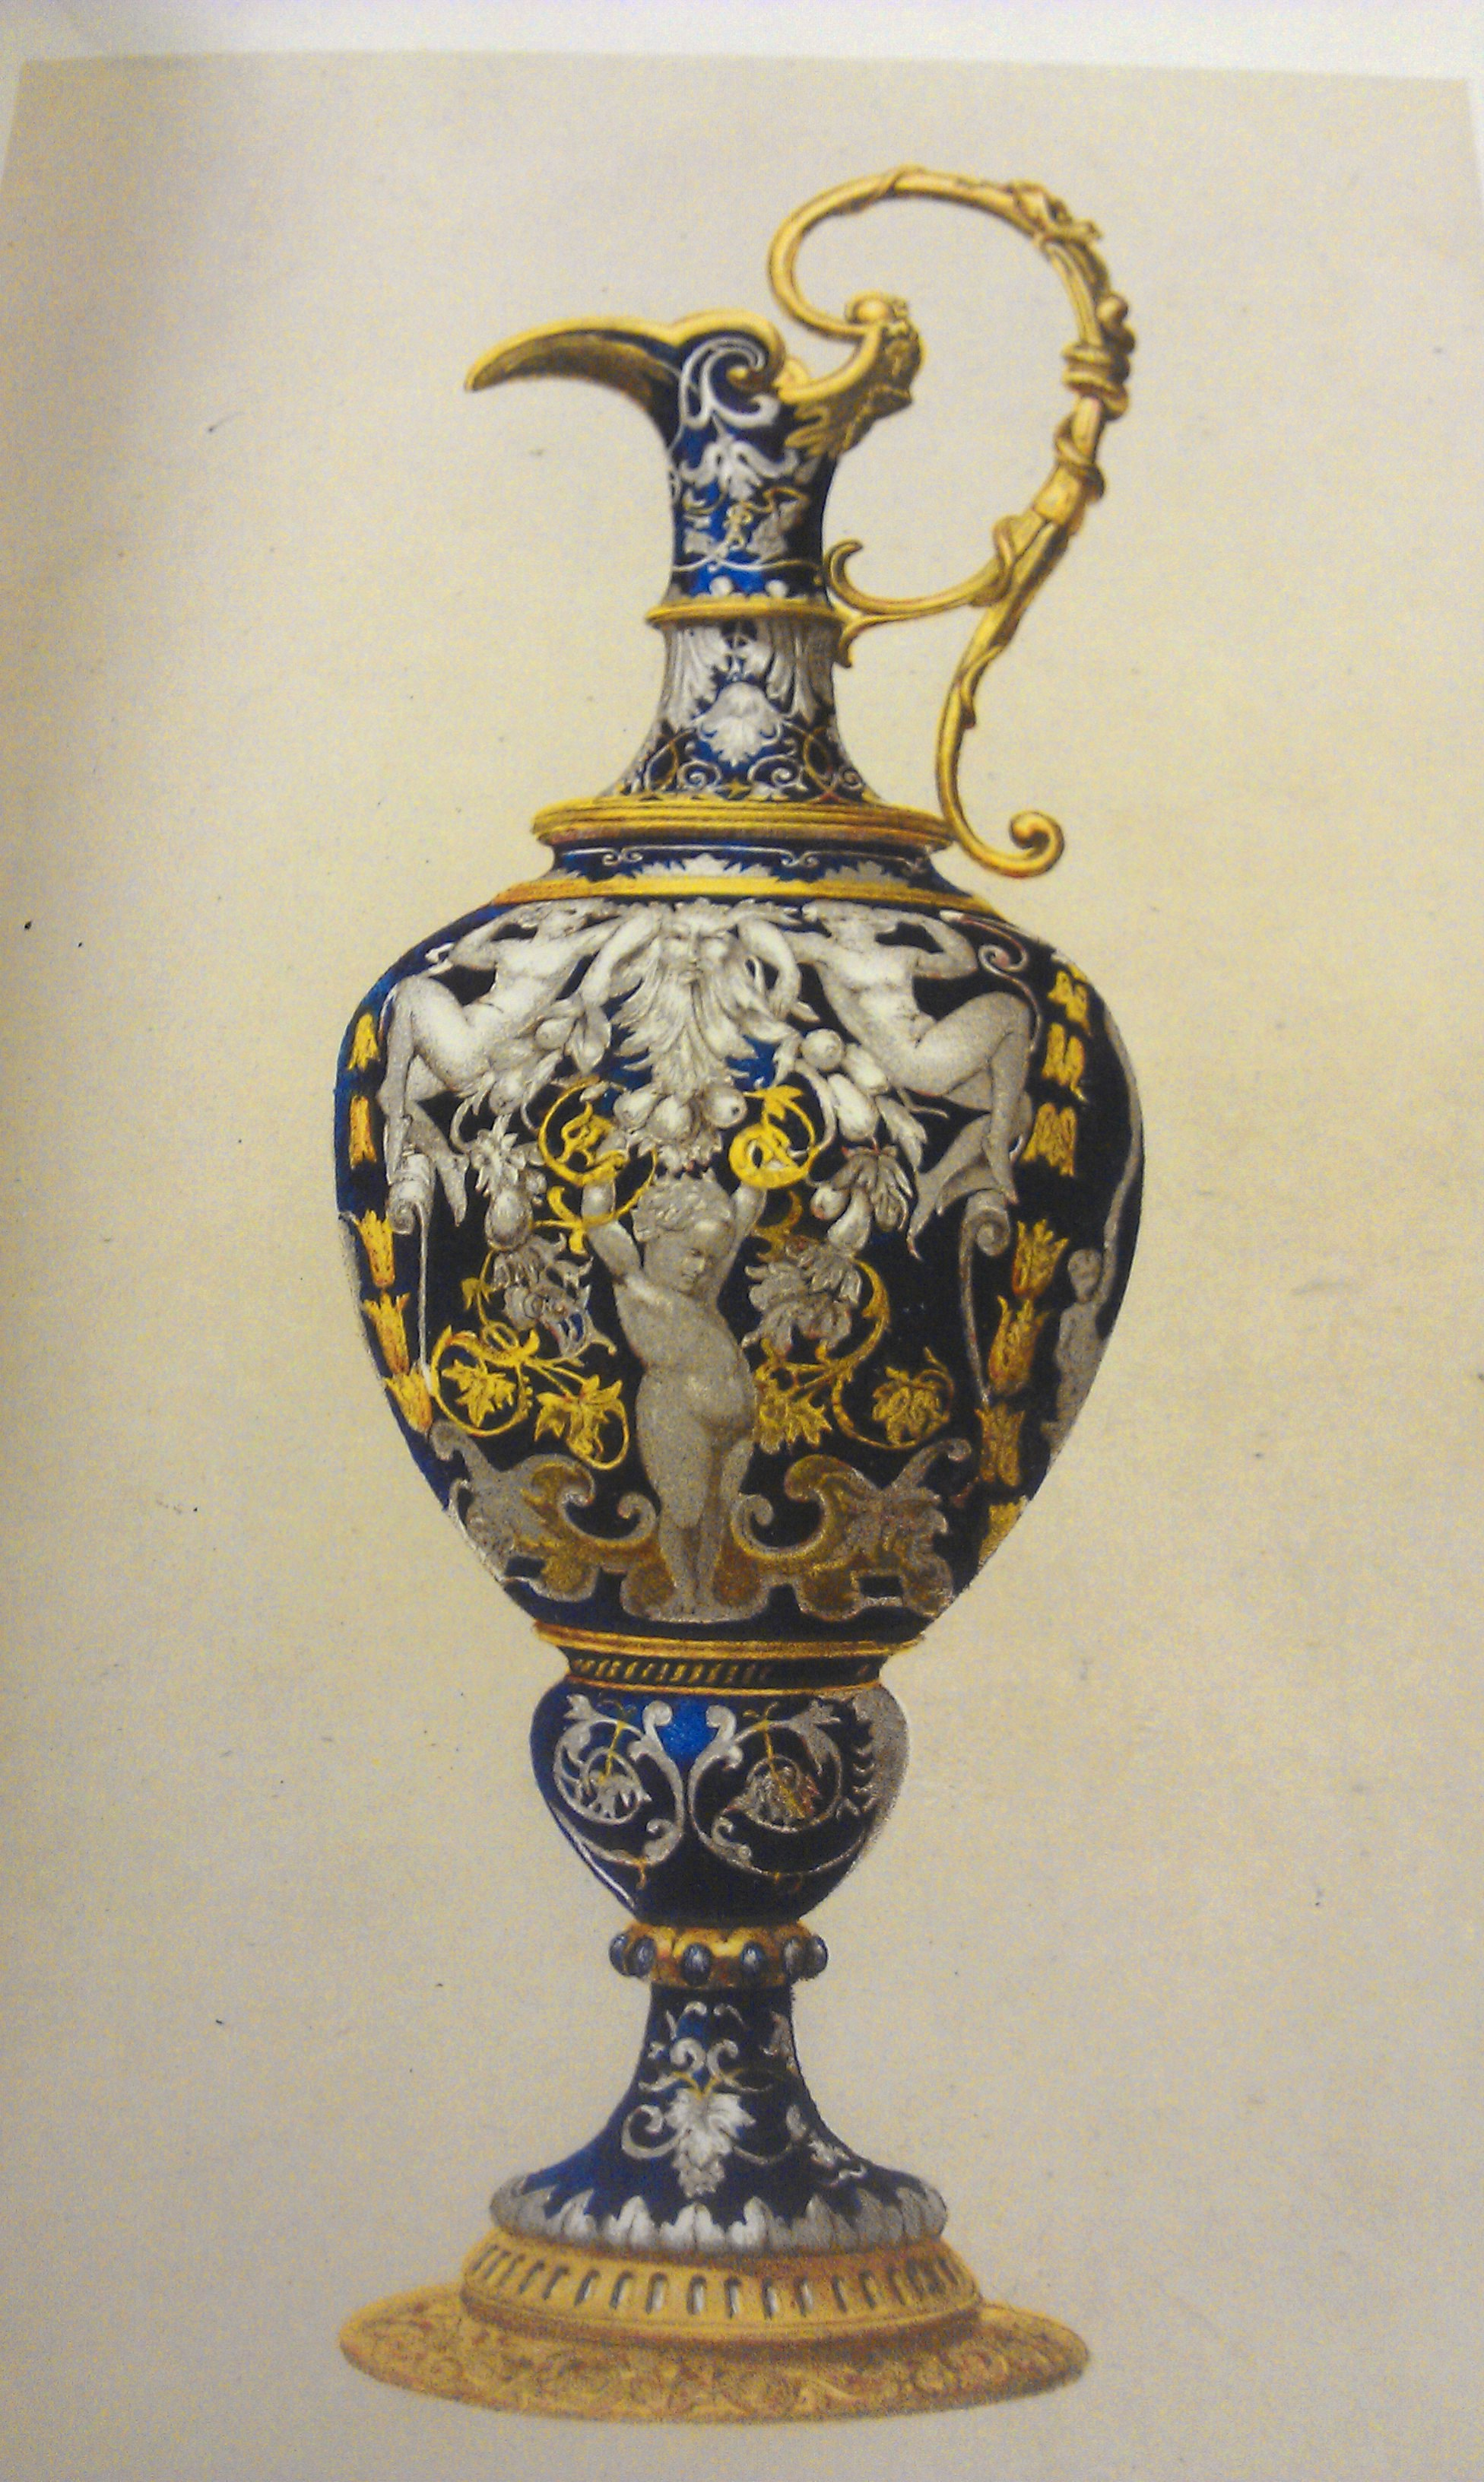 Image from the The Treasury of ornamental art by J.C. Robinson